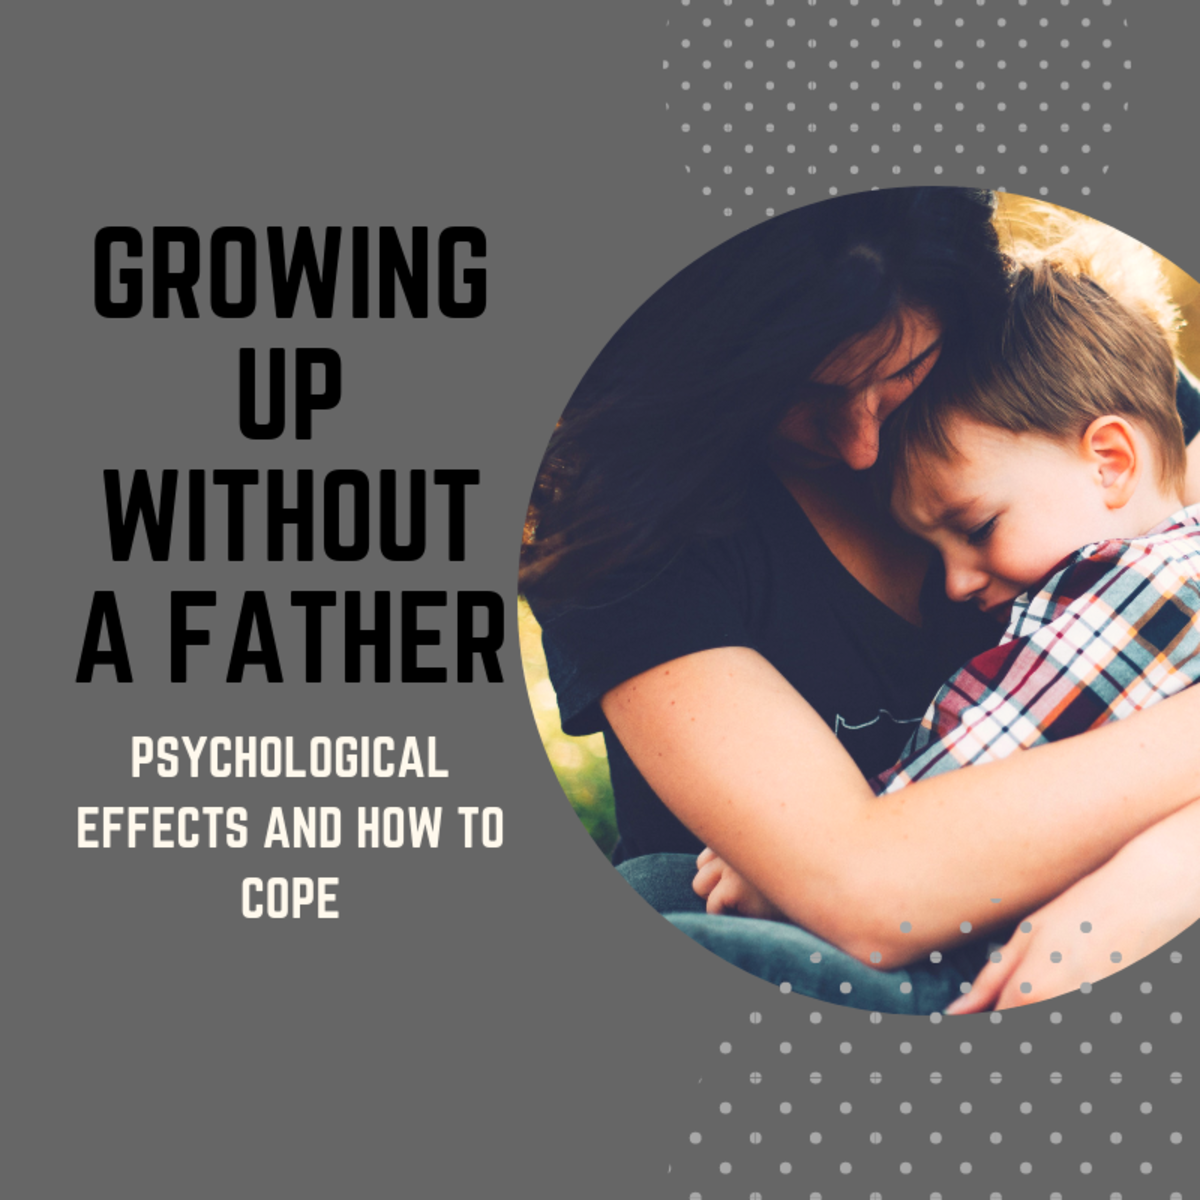 Psychological Effects of Growing Up Without a Father | Owlcation